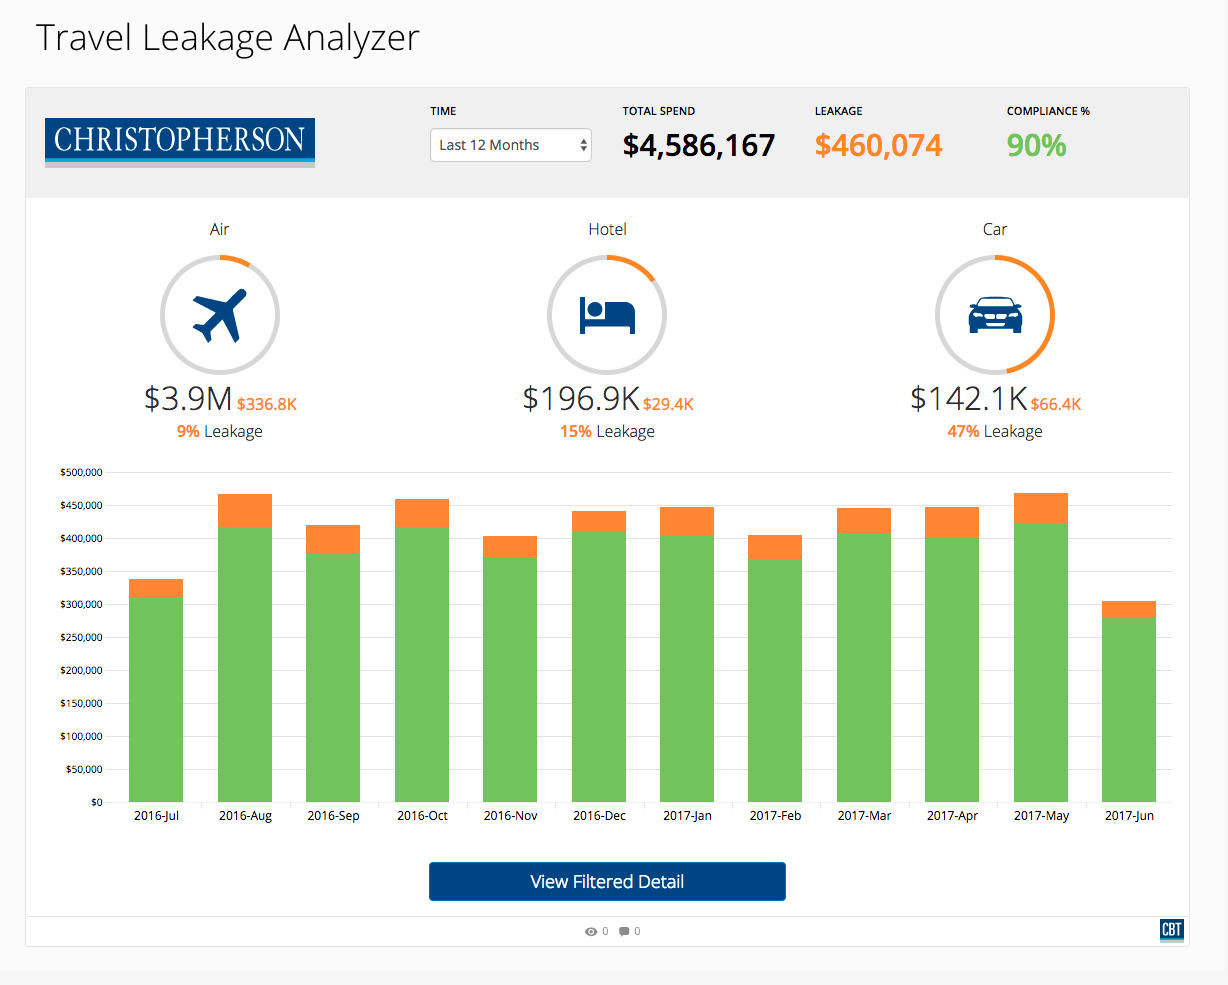 Travel Leakage Analyzer